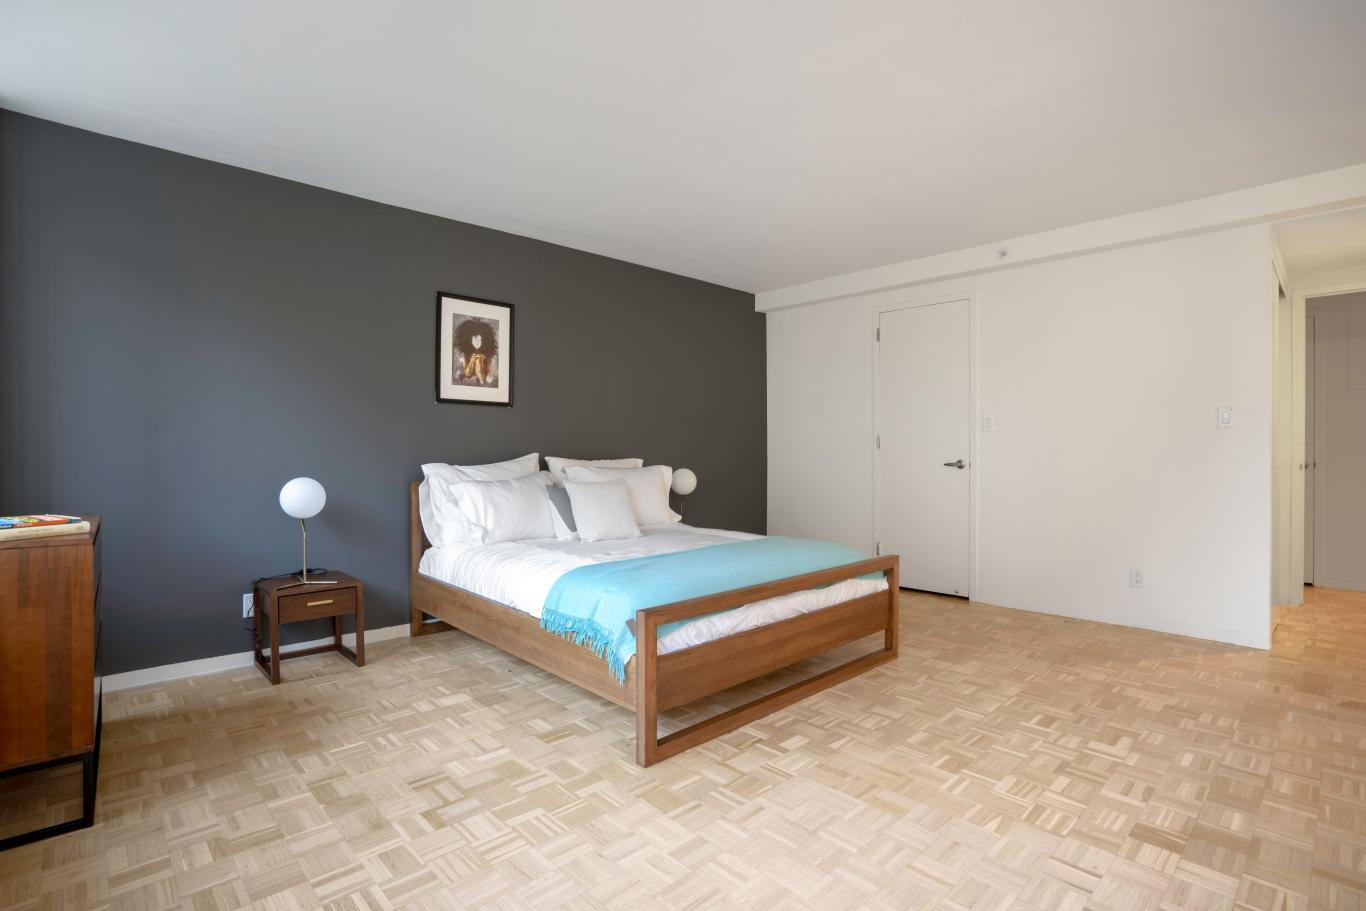 Bedroom at Avalon Prudential Apartments